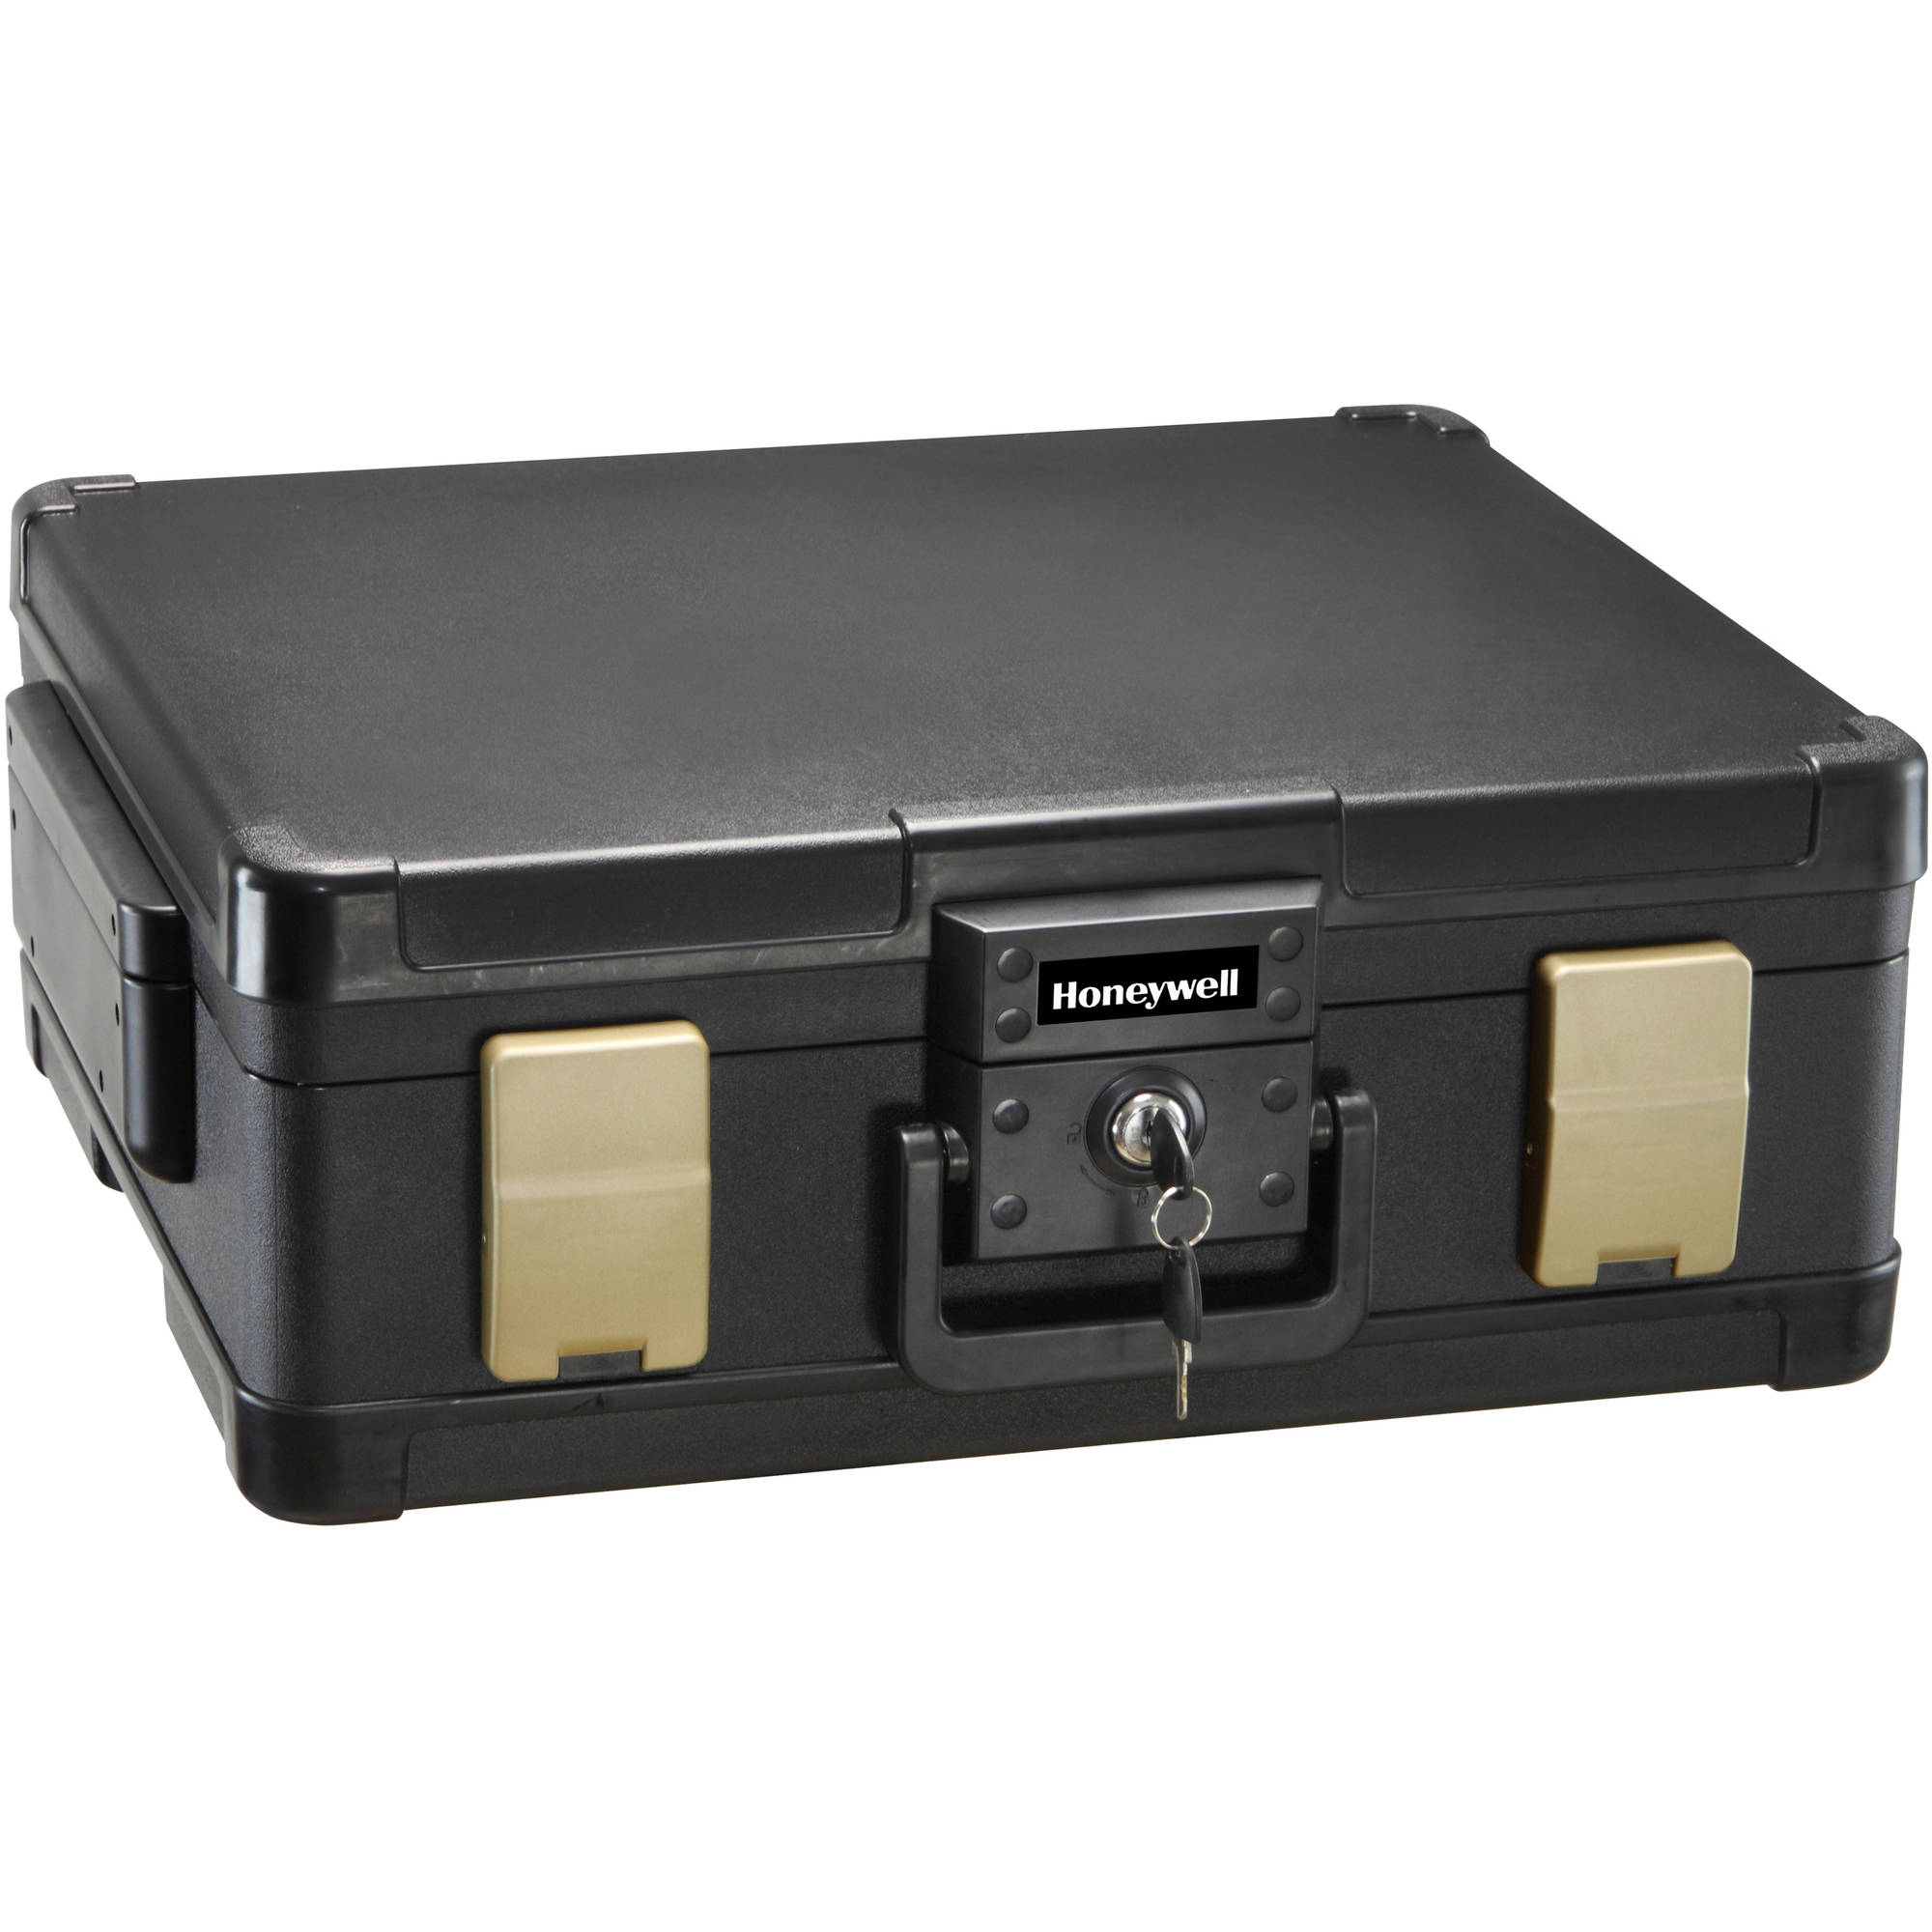 Honeywell 0.15 cu. ft. Waterproof 1-Hour Fire Chest with Key Lock, 1104